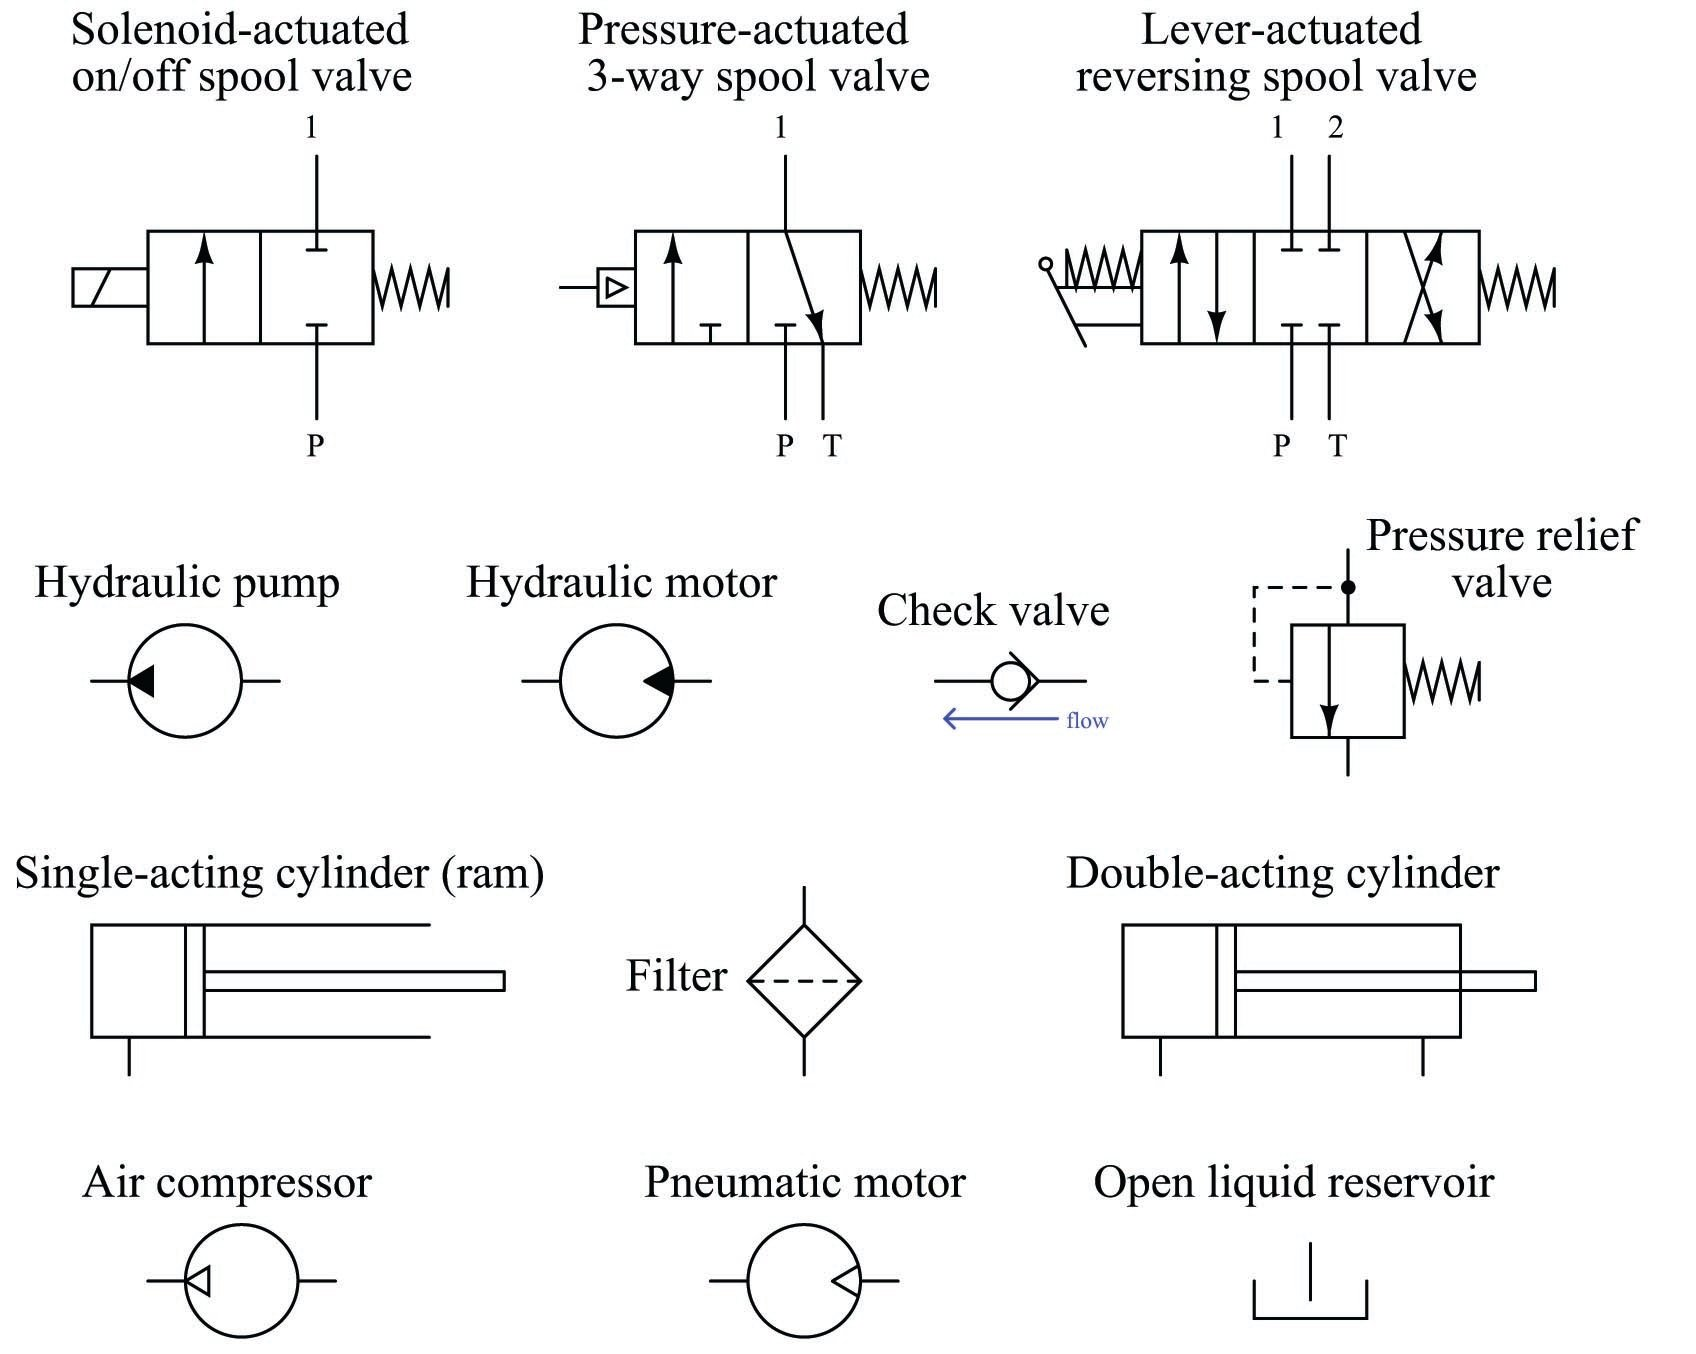 fluid power systems   discrete control system elements   automation textbook  control.com